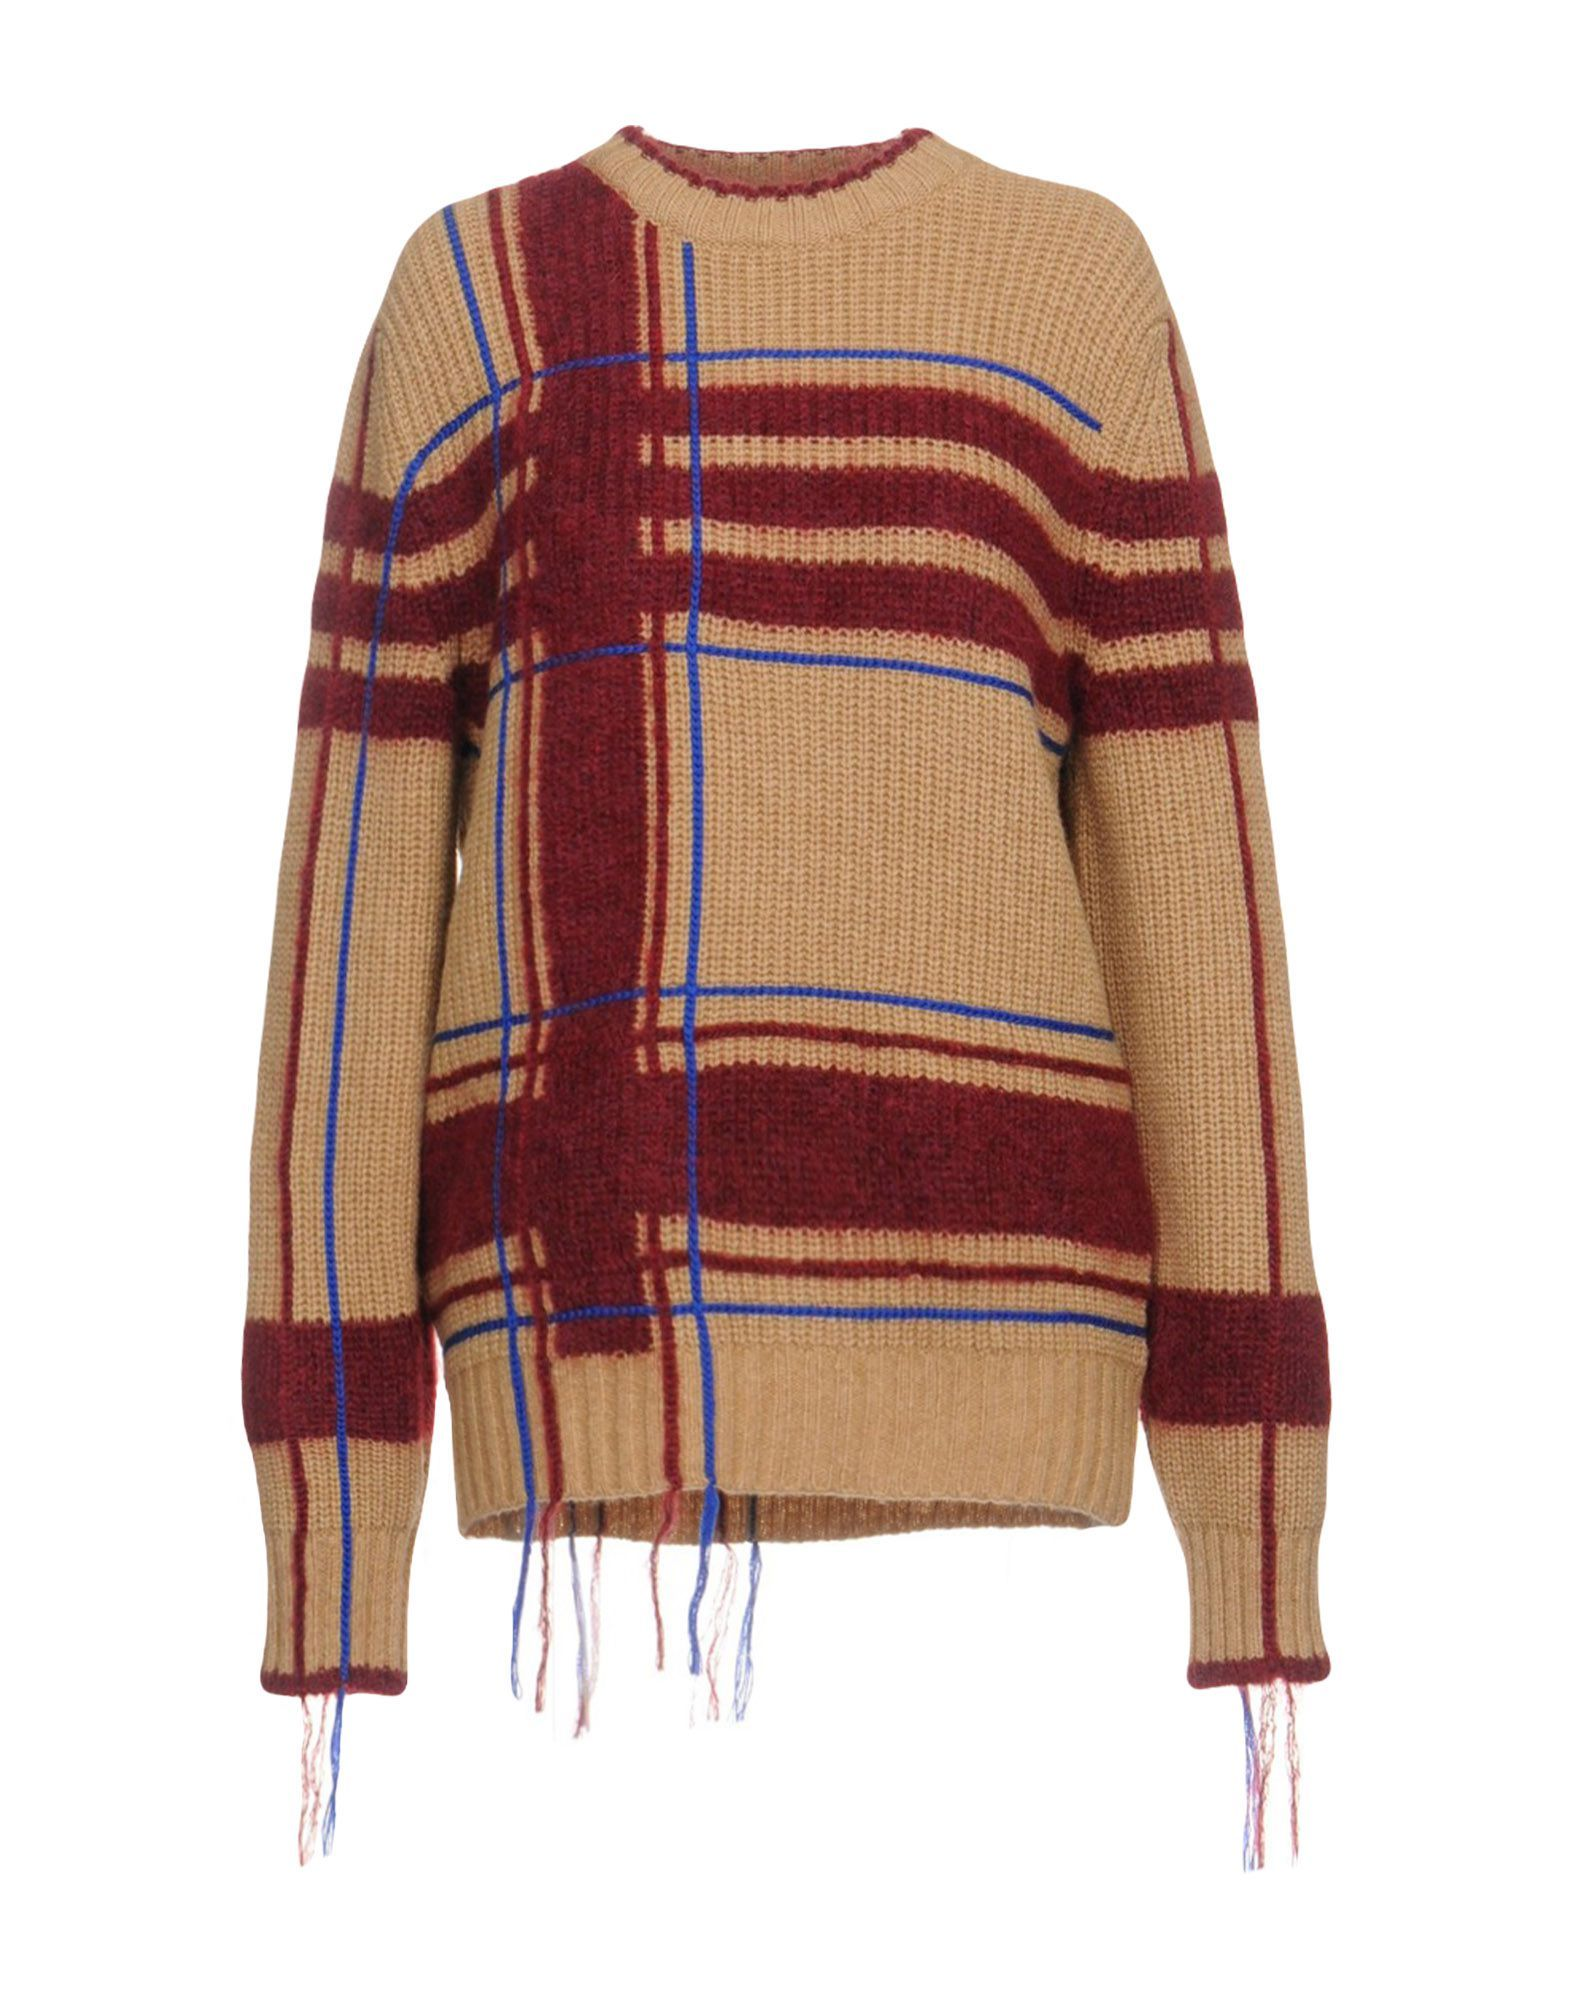 Tory Burch Sand Wool Jumper